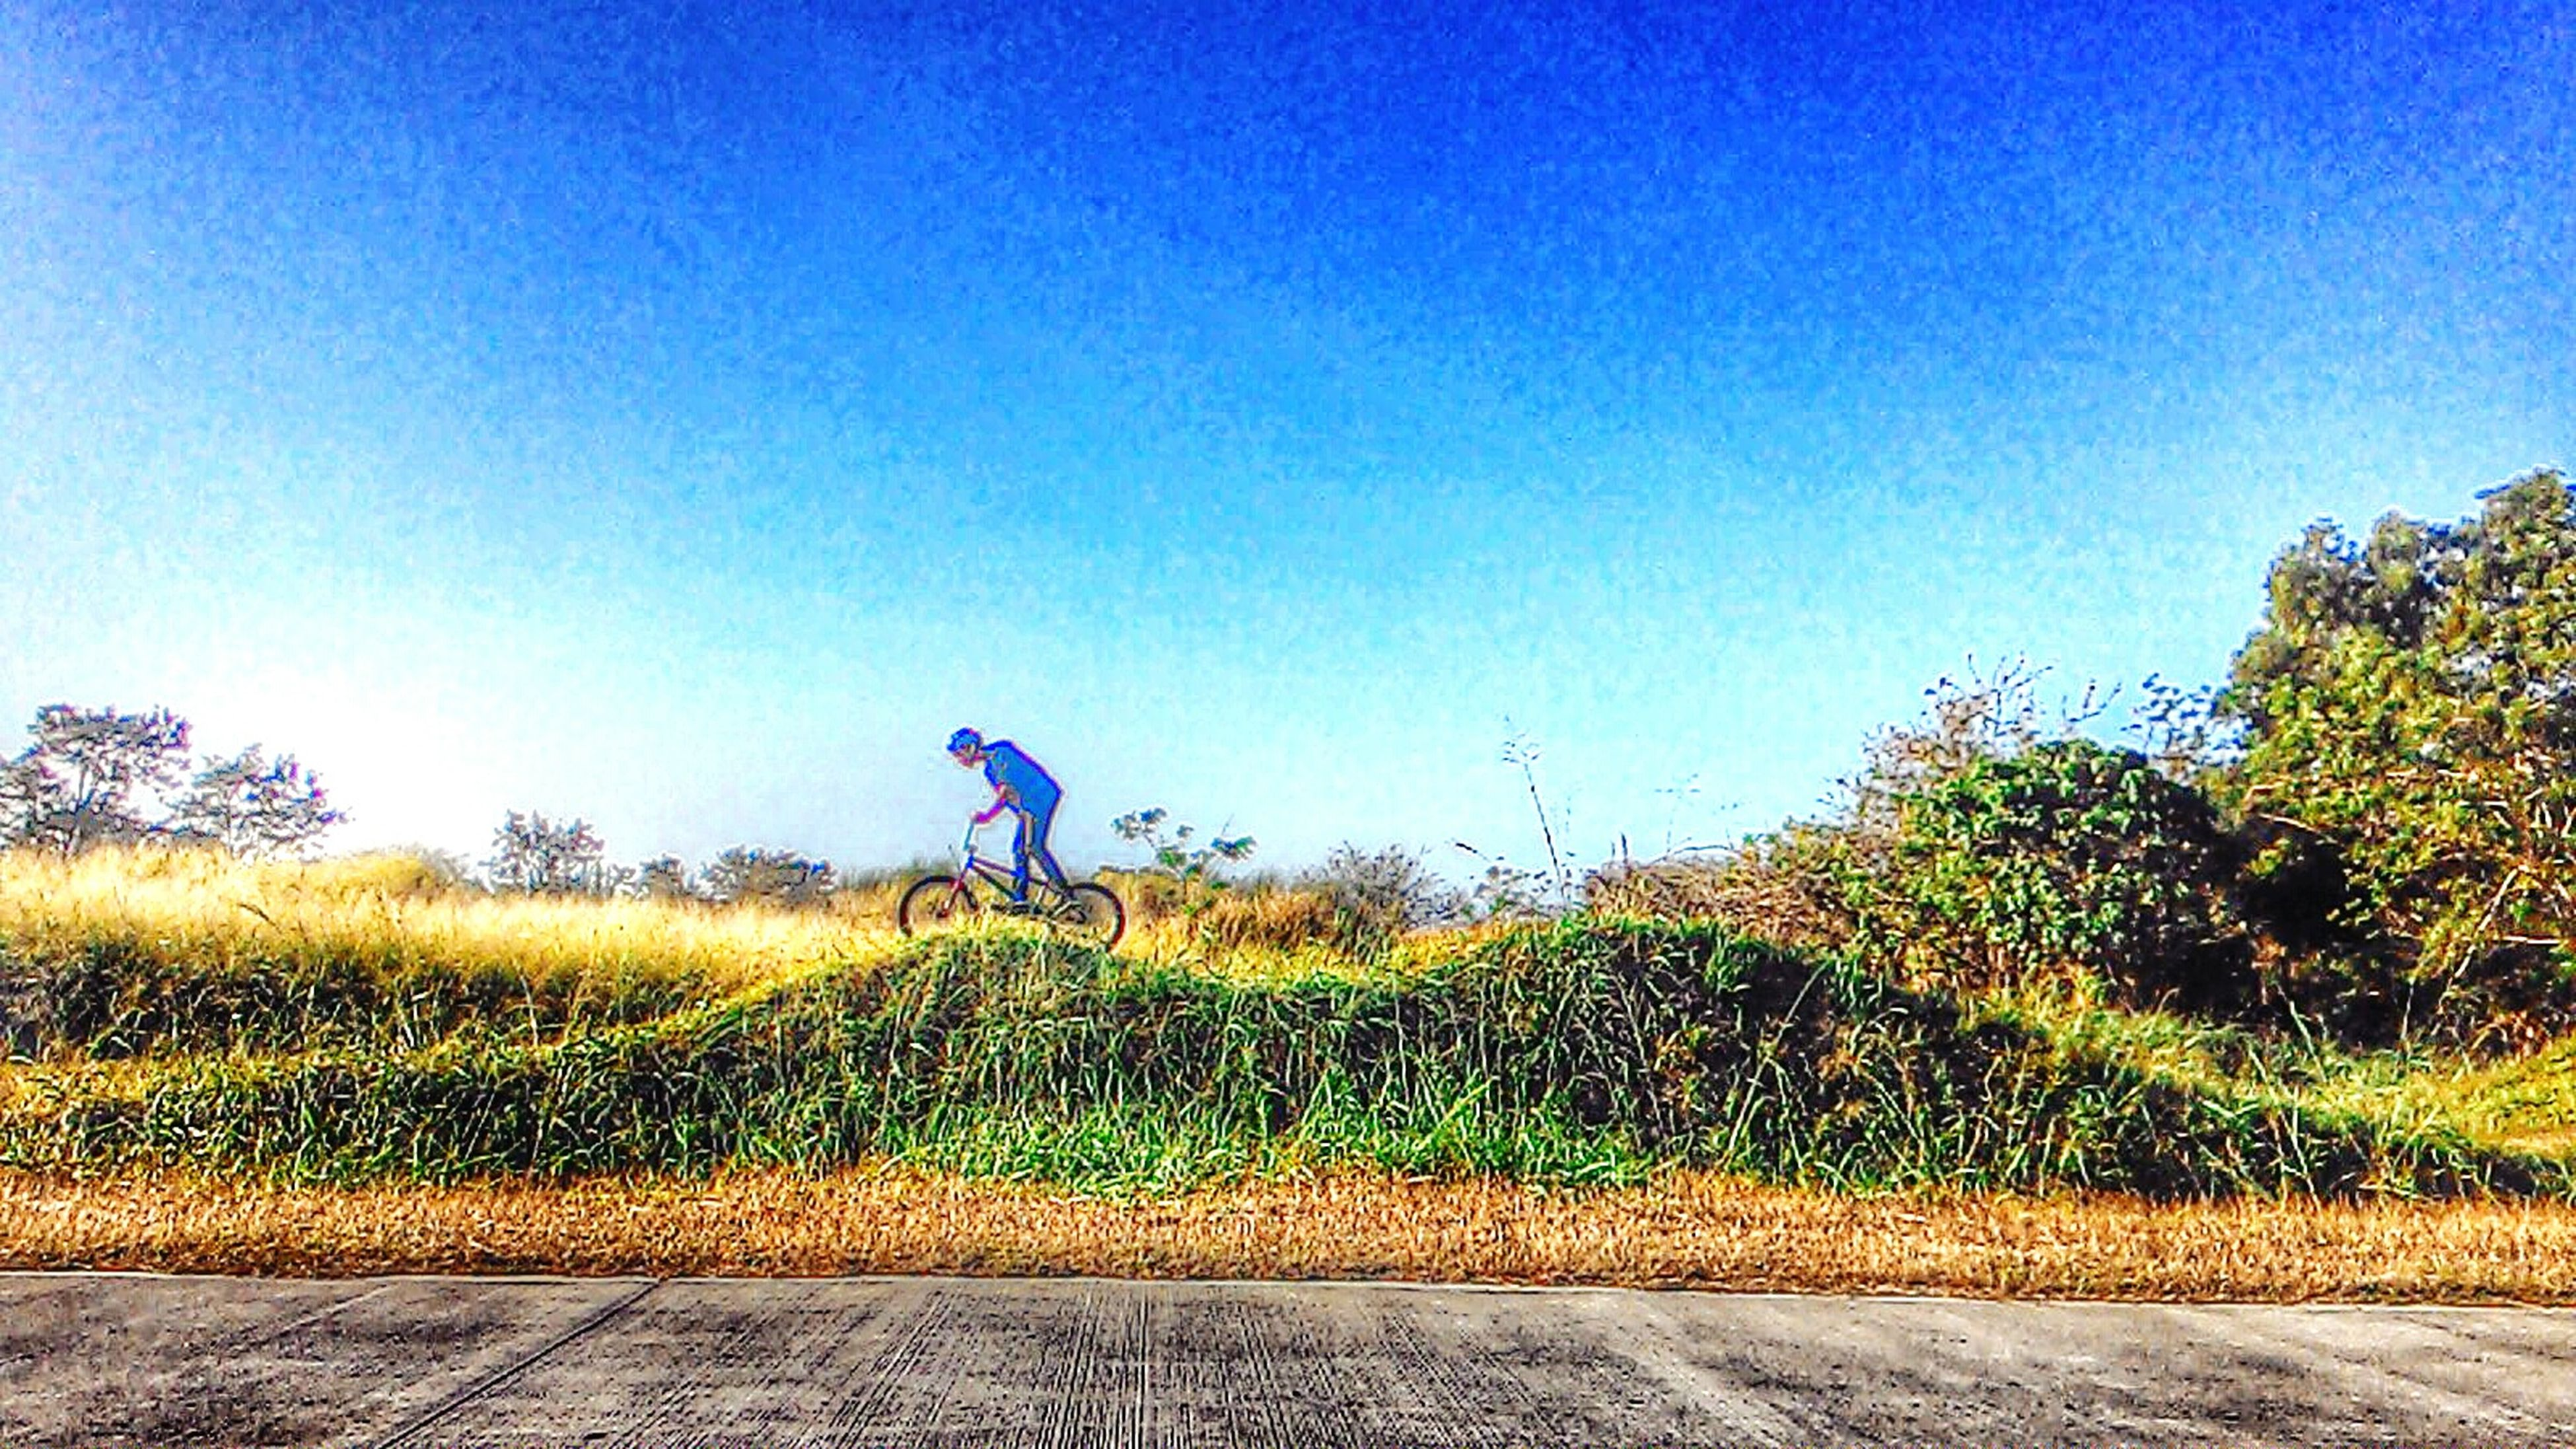 clear sky, blue, copy space, field, lifestyles, leisure activity, grass, growth, plant, yellow, men, bicycle, agriculture, landscape, childhood, tree, nature, sunlight